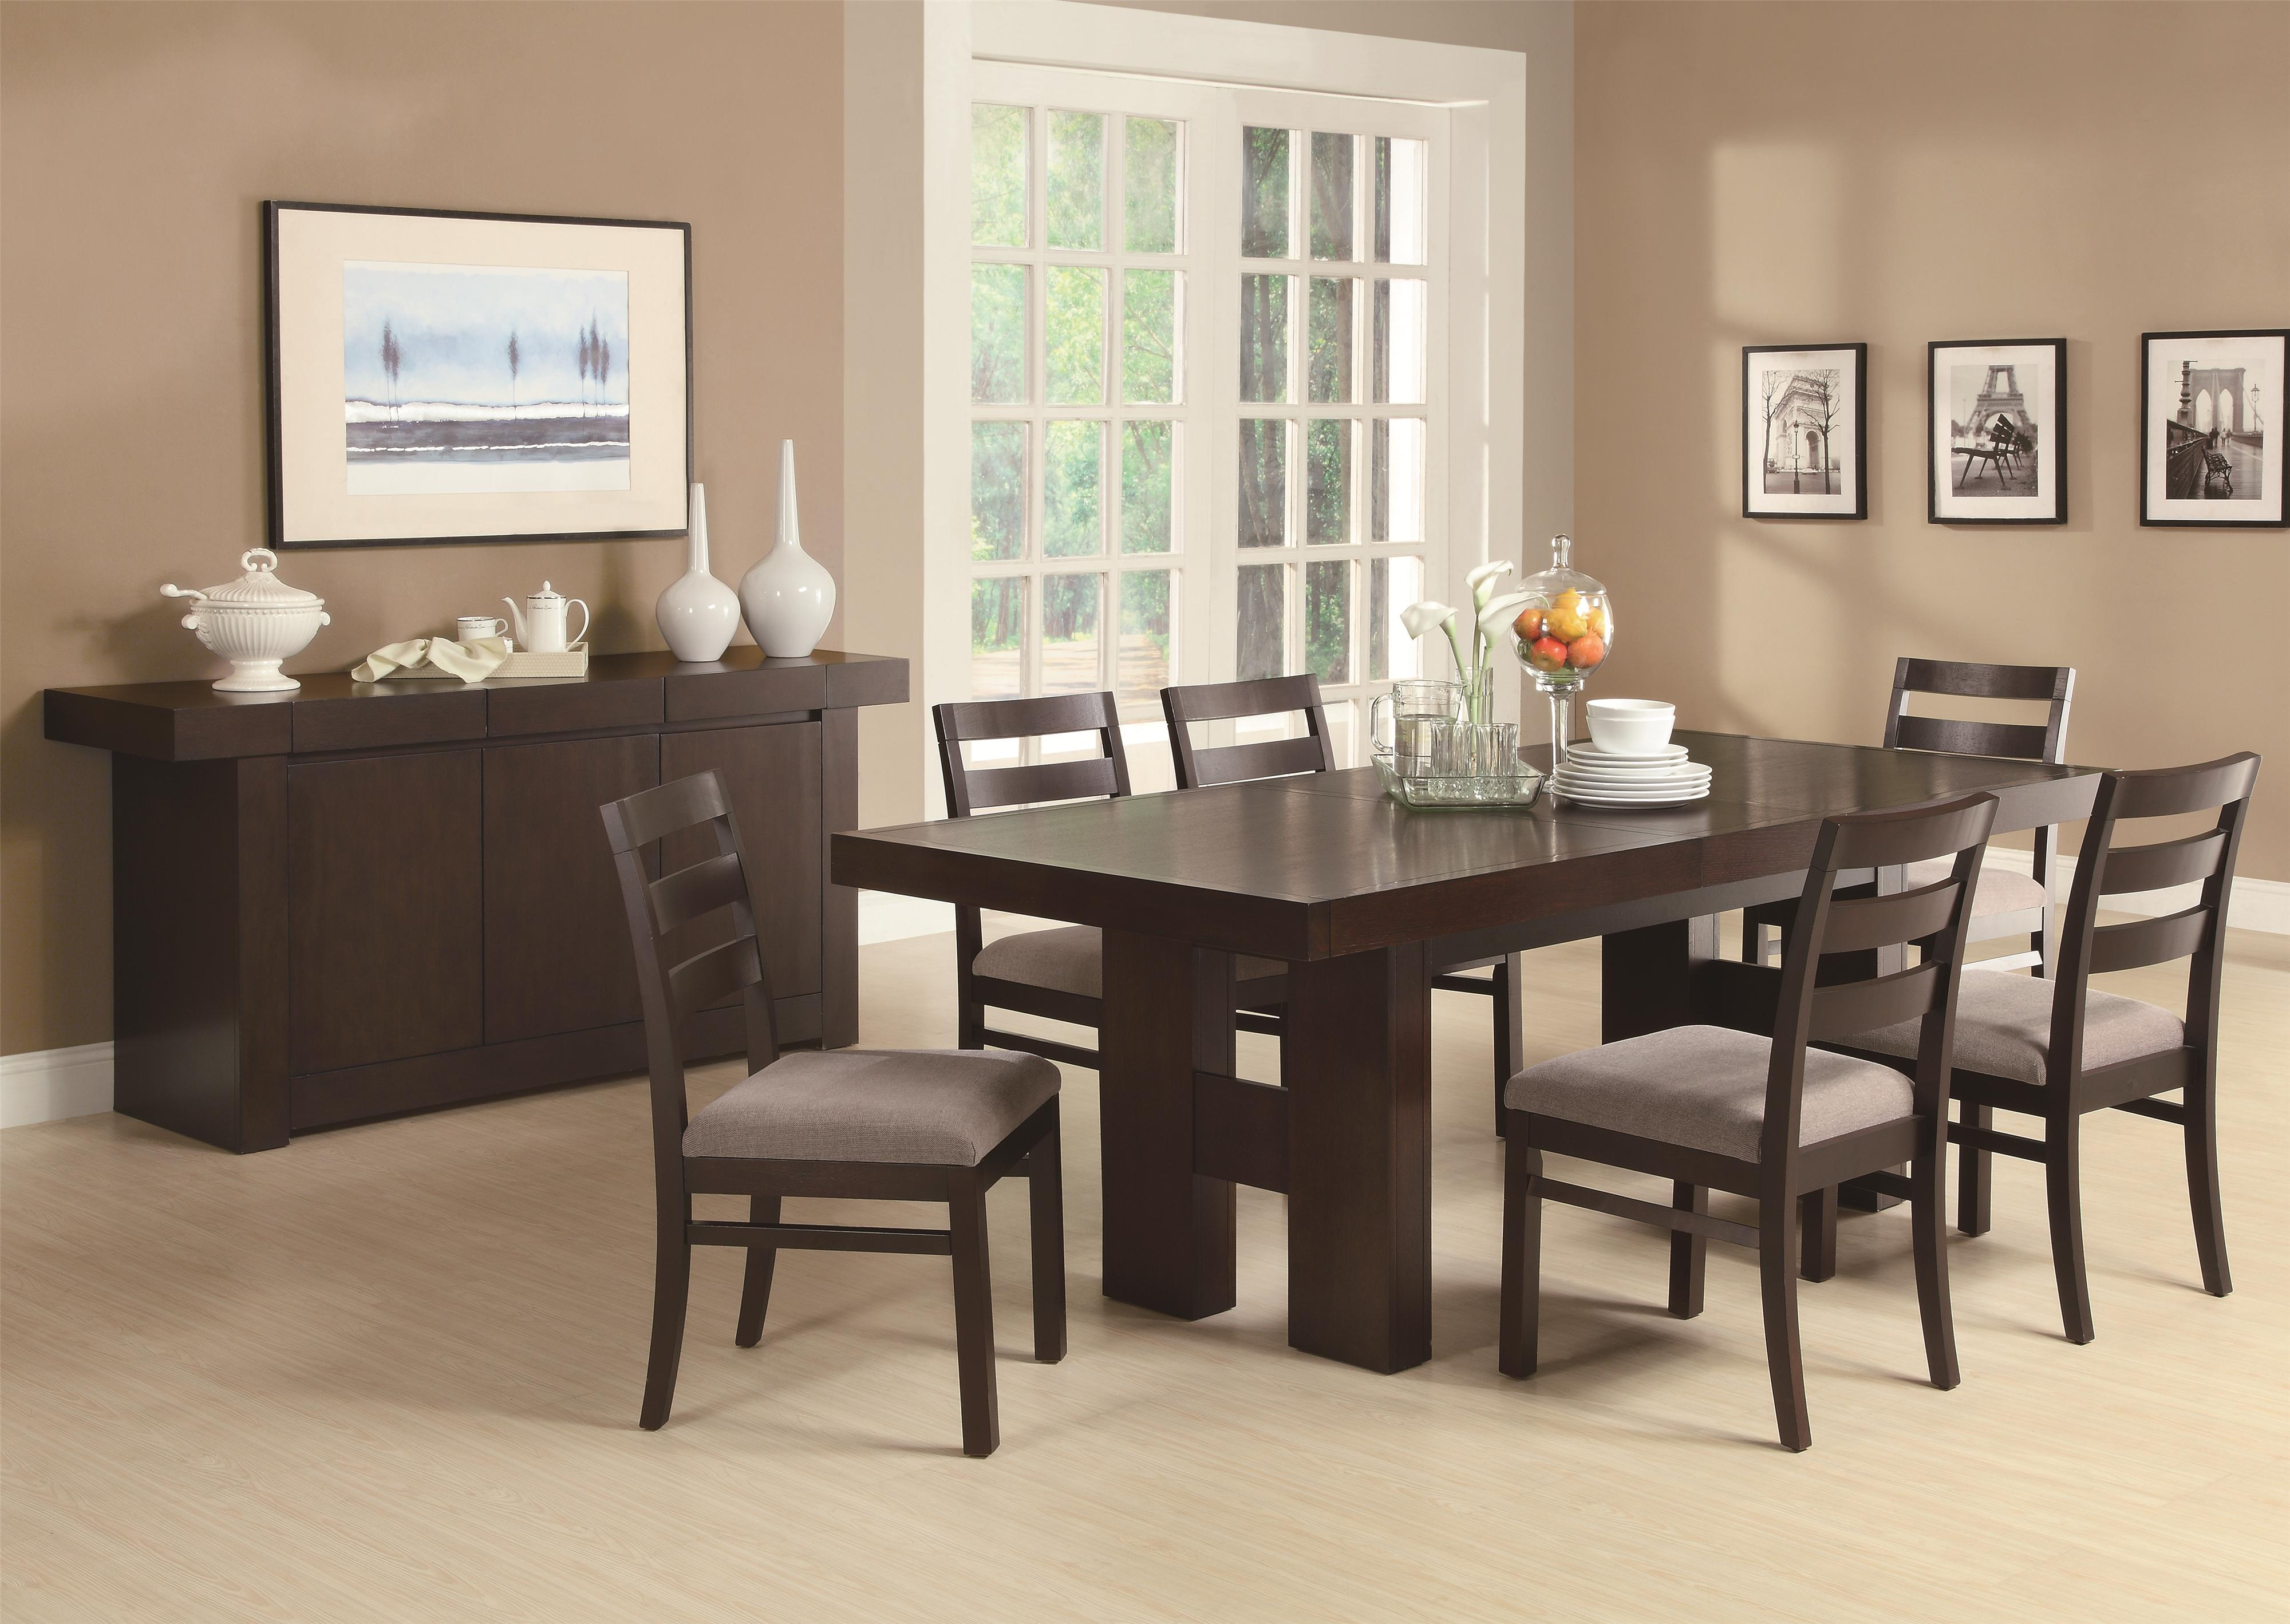 Coaster Dabny Casual Dining Room Group - Item Number: 103100 Dining Room Group 1